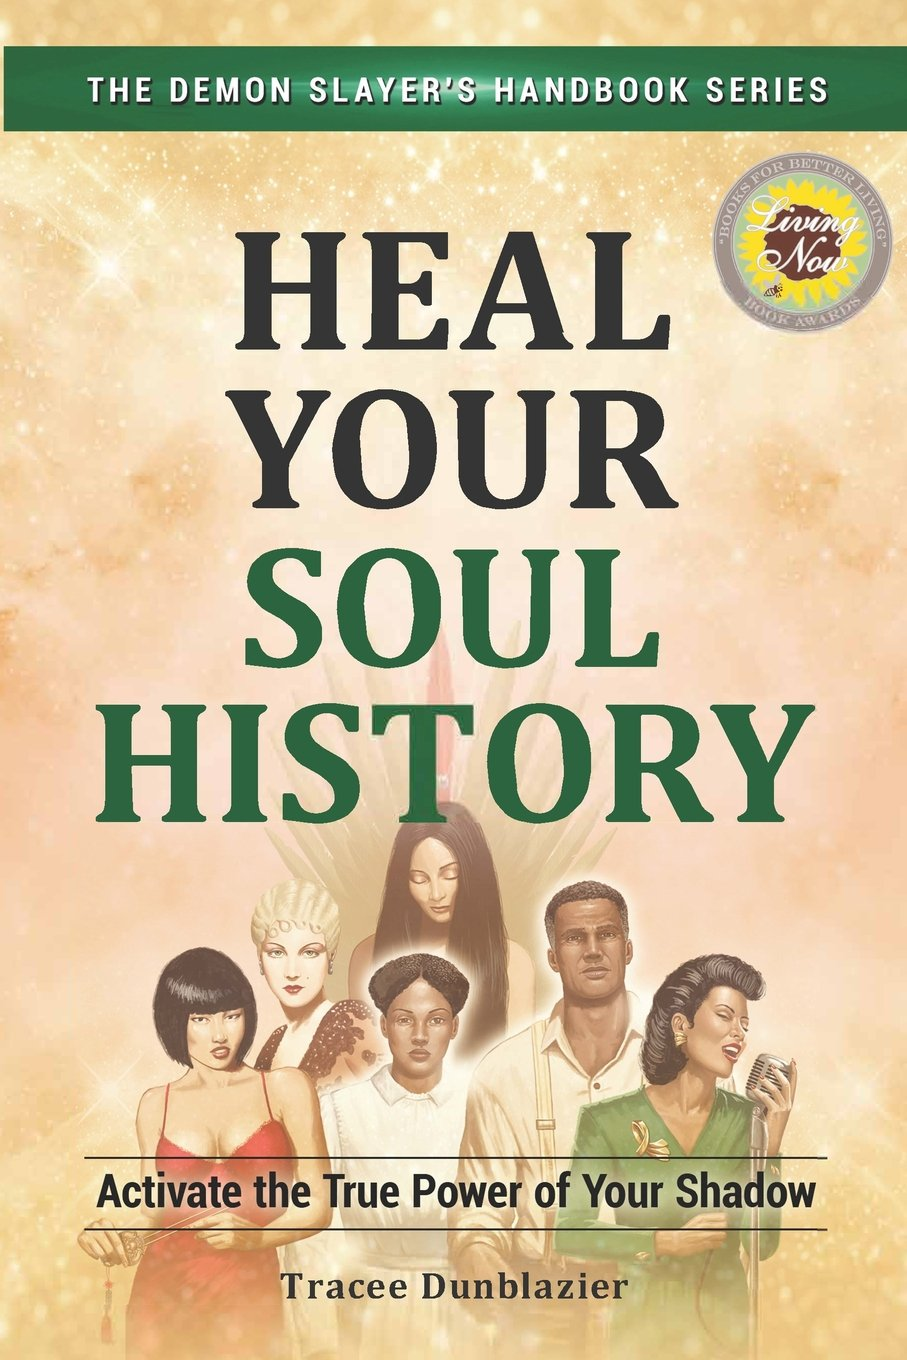 heal your soul history.jpg